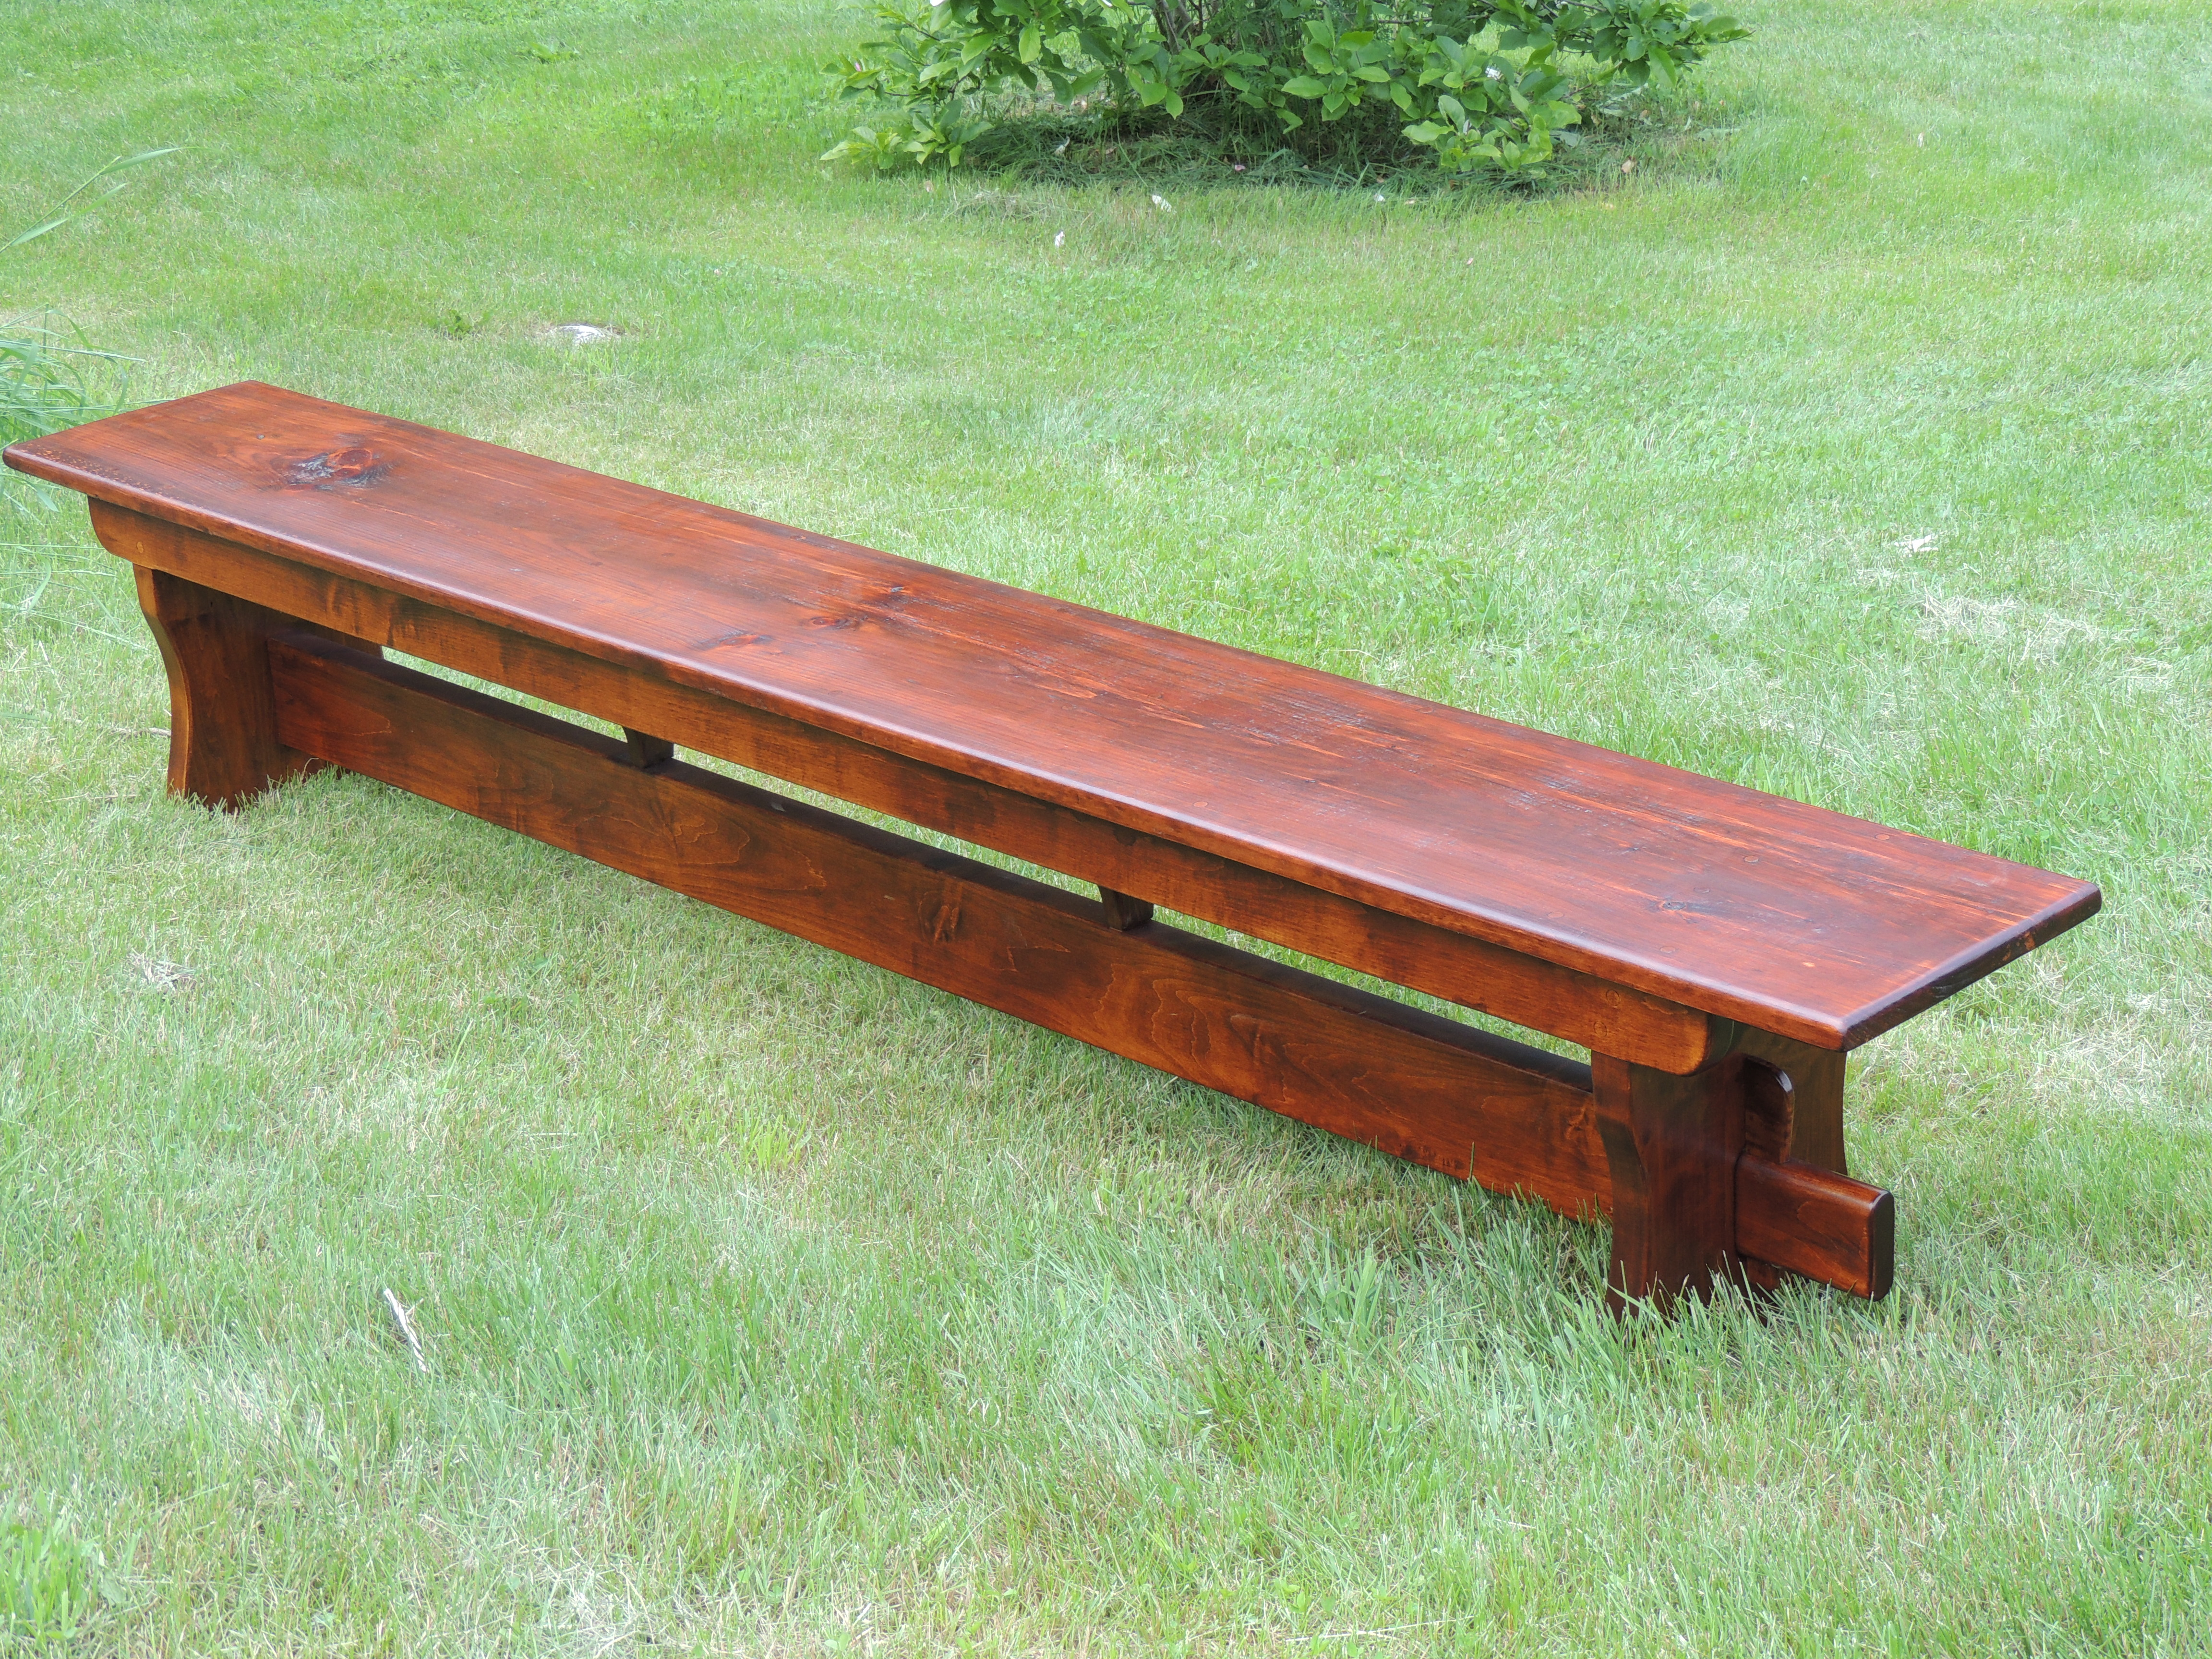 9ft. bench